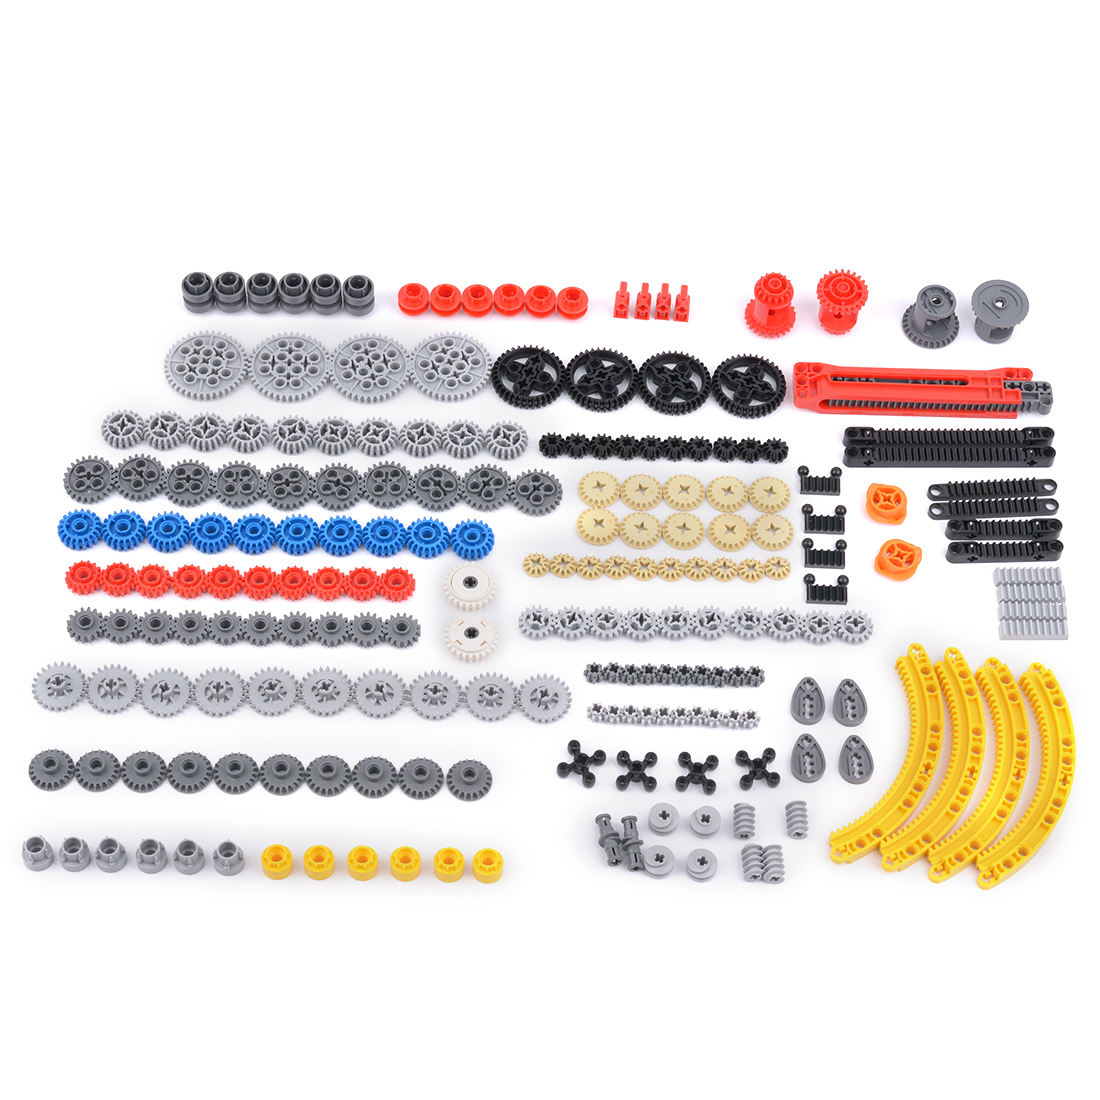 DIY Educational Technic Parts Gearbox Gear Parts Building Block for Legoing Bricks